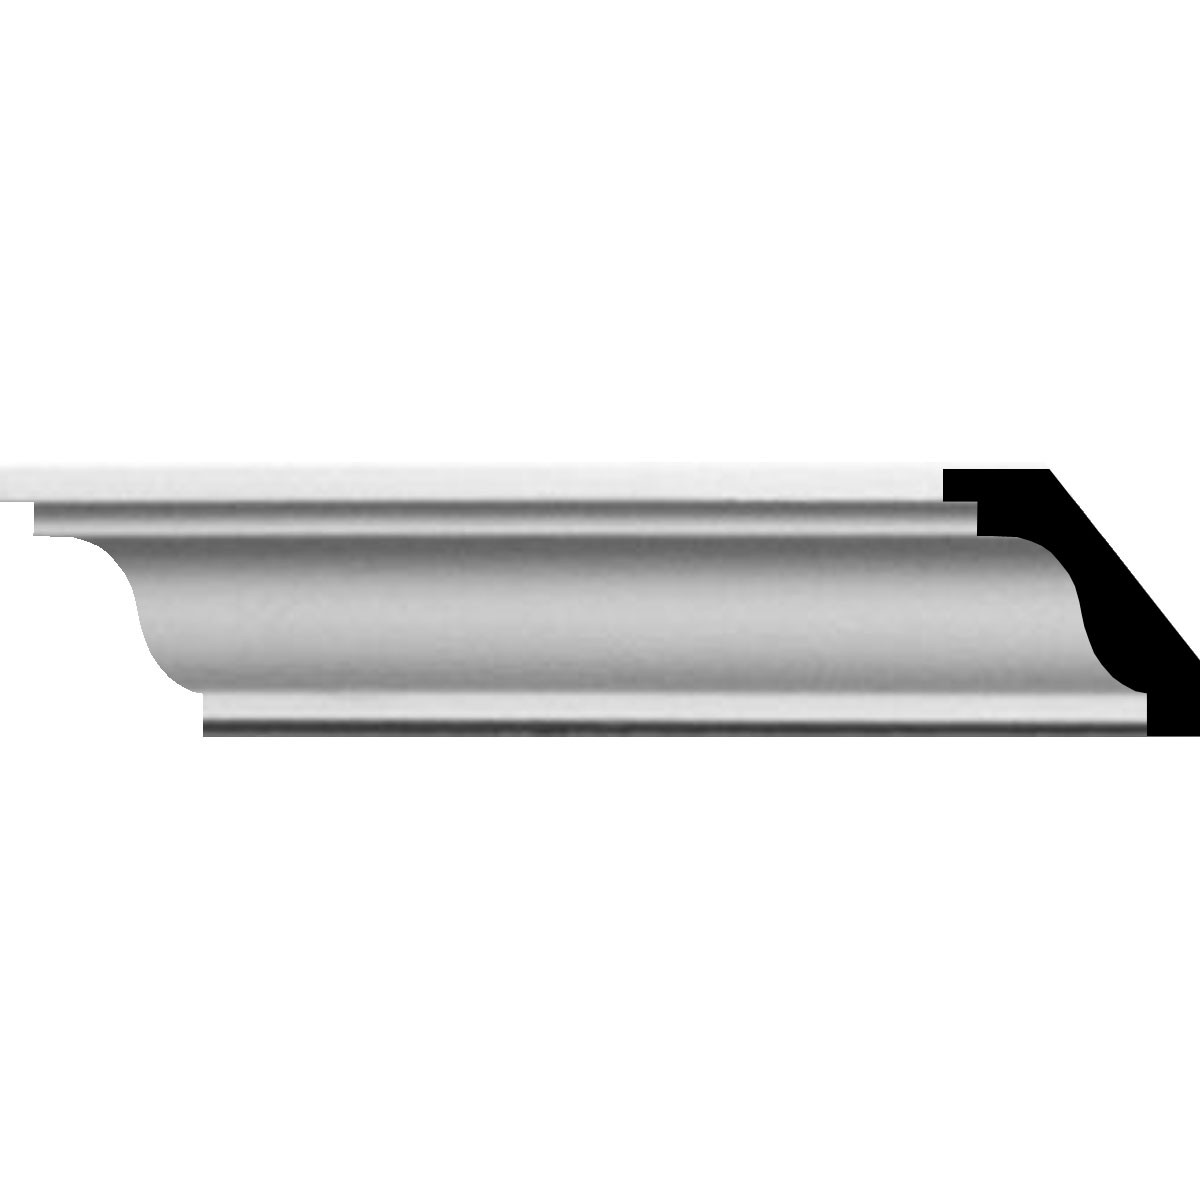 """EM-MLD01X01X01HI - 1 1/4""""H x 1 1/4""""P x 1 3/4""""F x 94 1/2""""L Hillsborough Traditional Smooth Crown Moulding"""